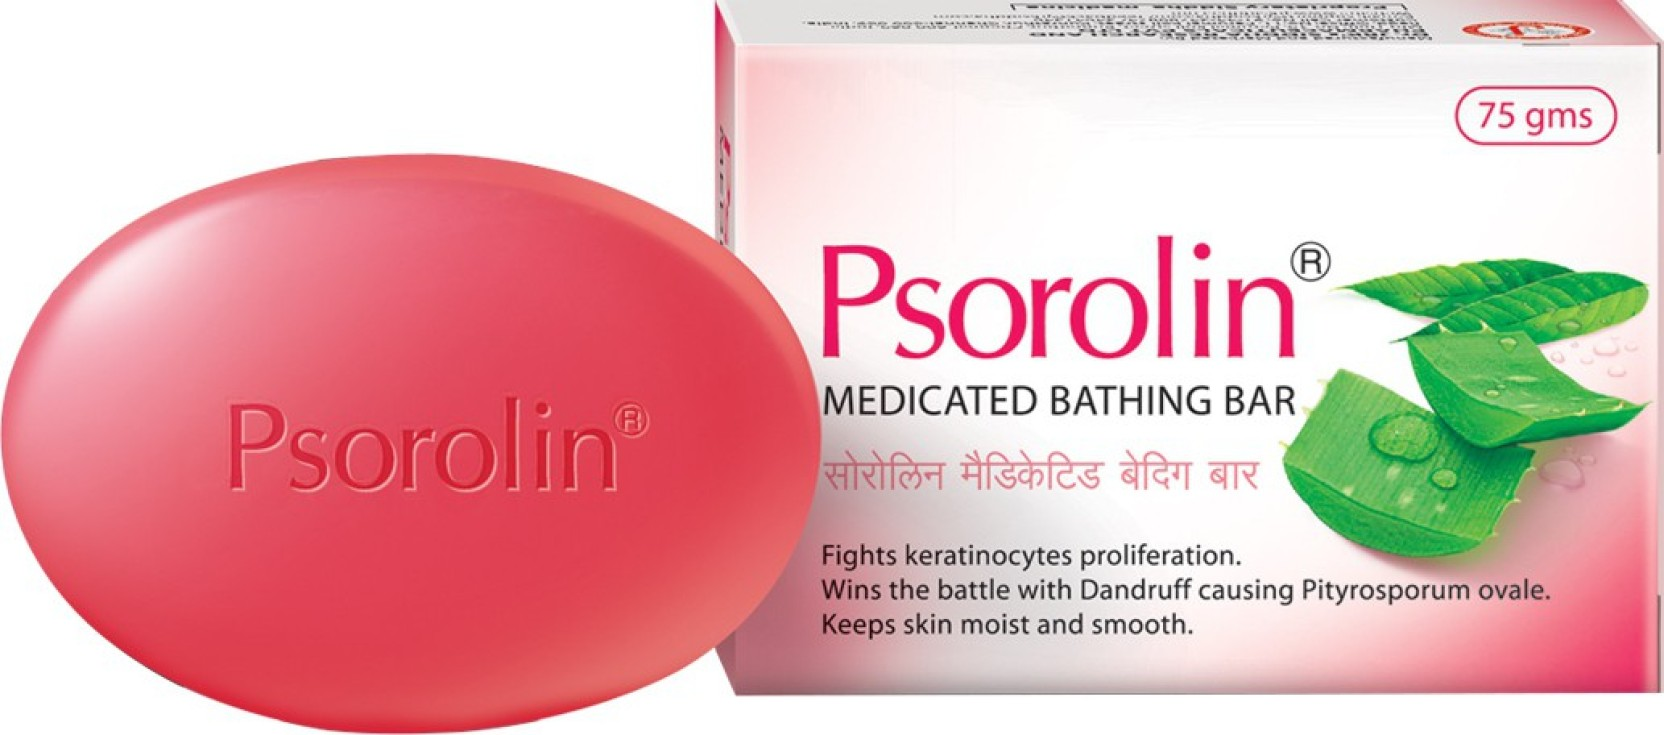 Dr Jrks Psorolin Medicated Bathing Bar 75gm Price In India Buy Ovale Olive Oil 100 Ml Add To Cart